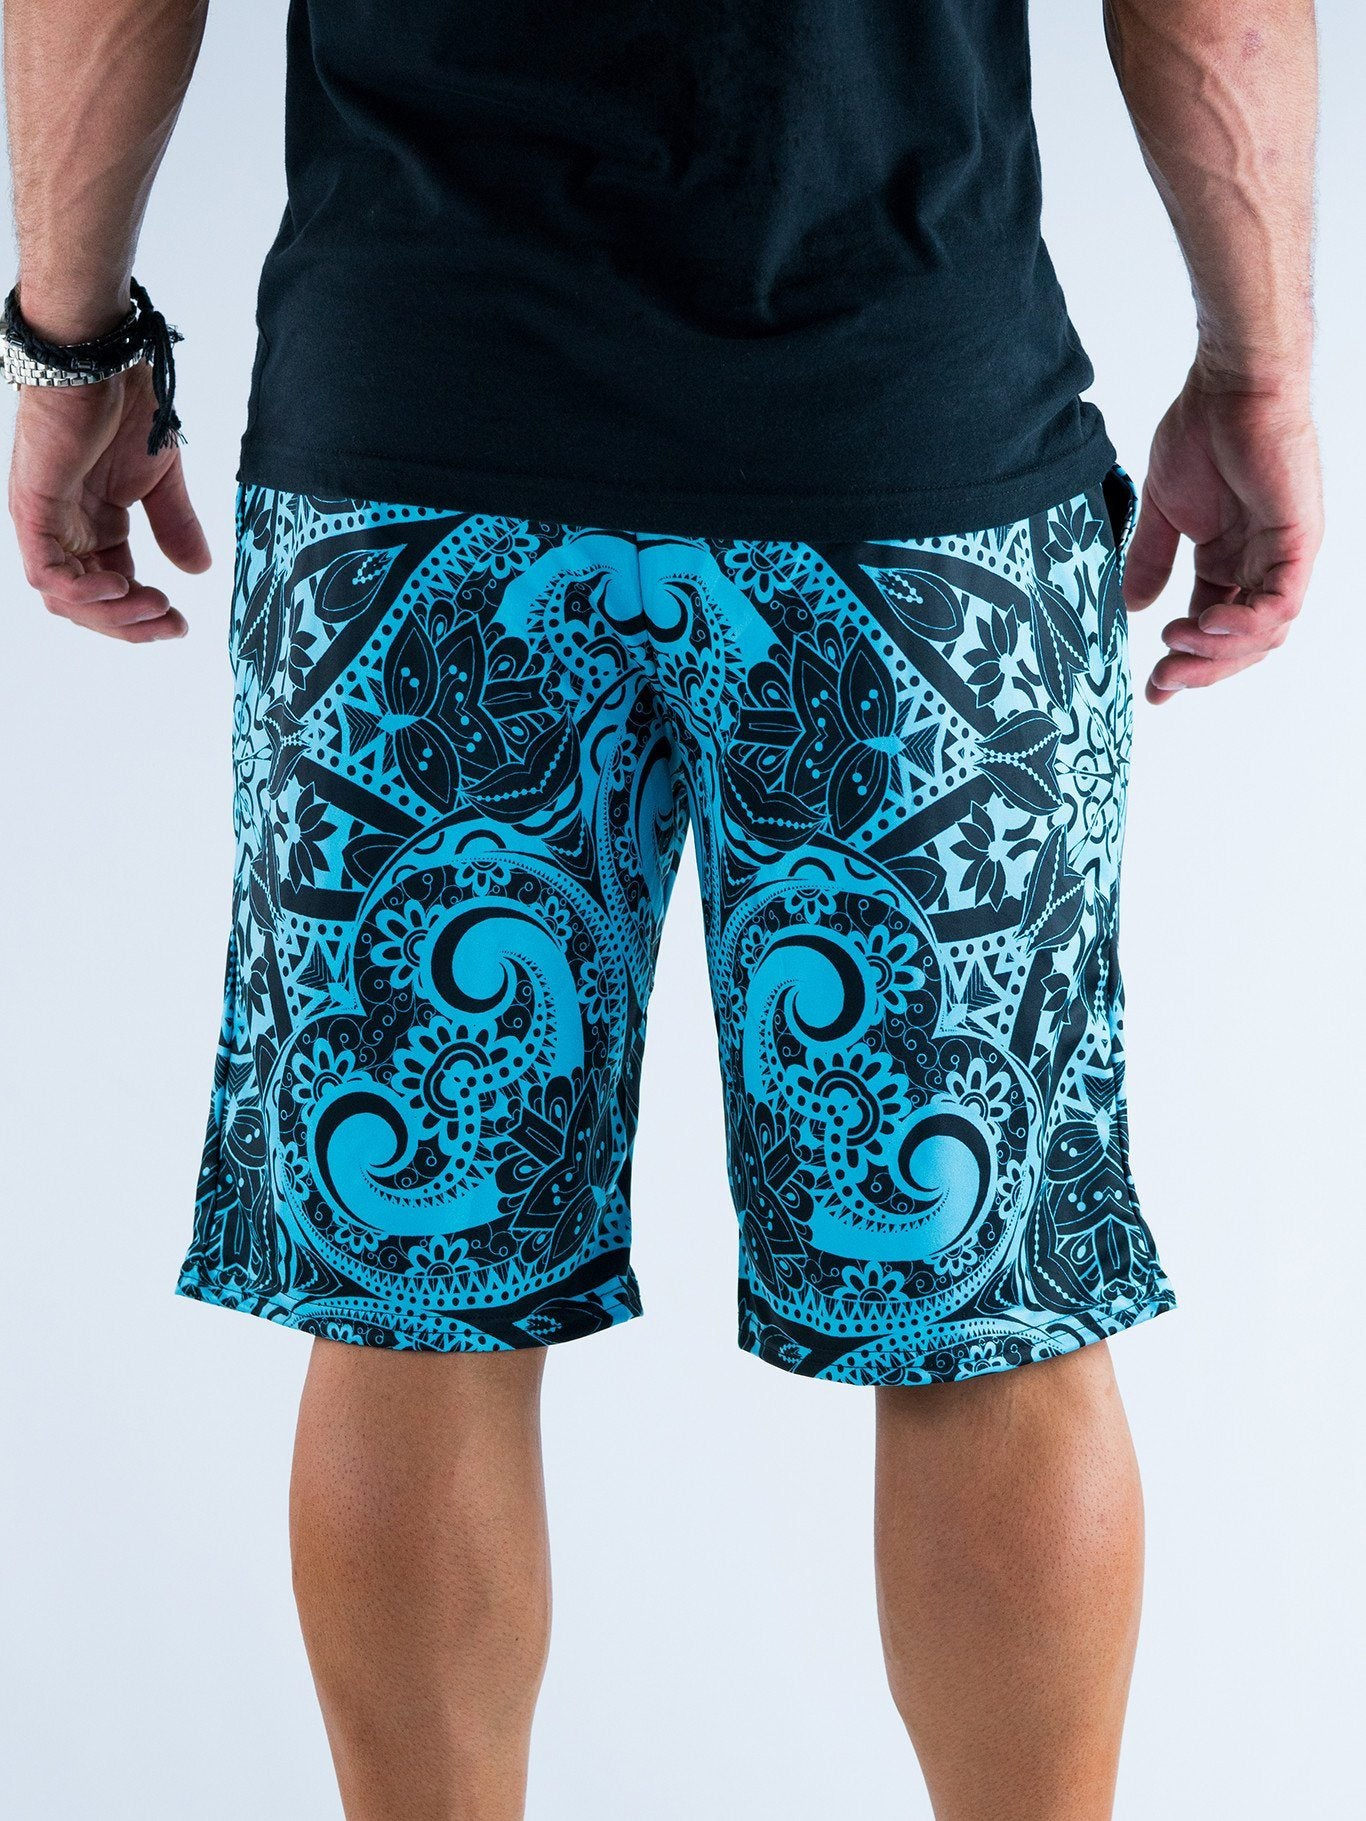 Teal Mandala Shorts Mens Shorts T6